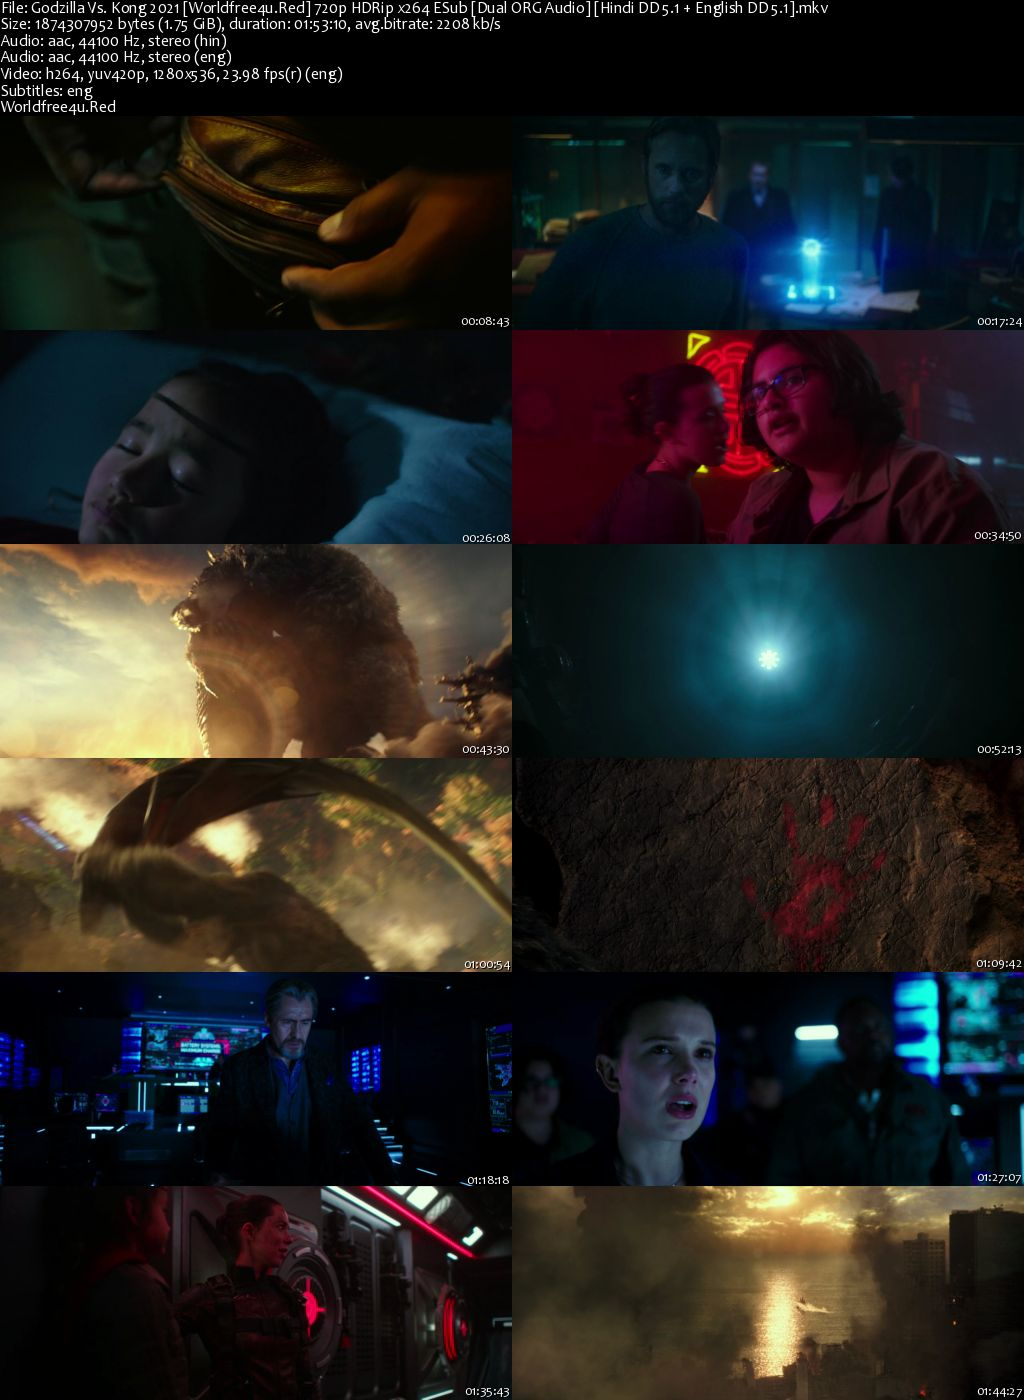 Godzilla Vs. Kong 2021 HDRip 720p Dual Audio